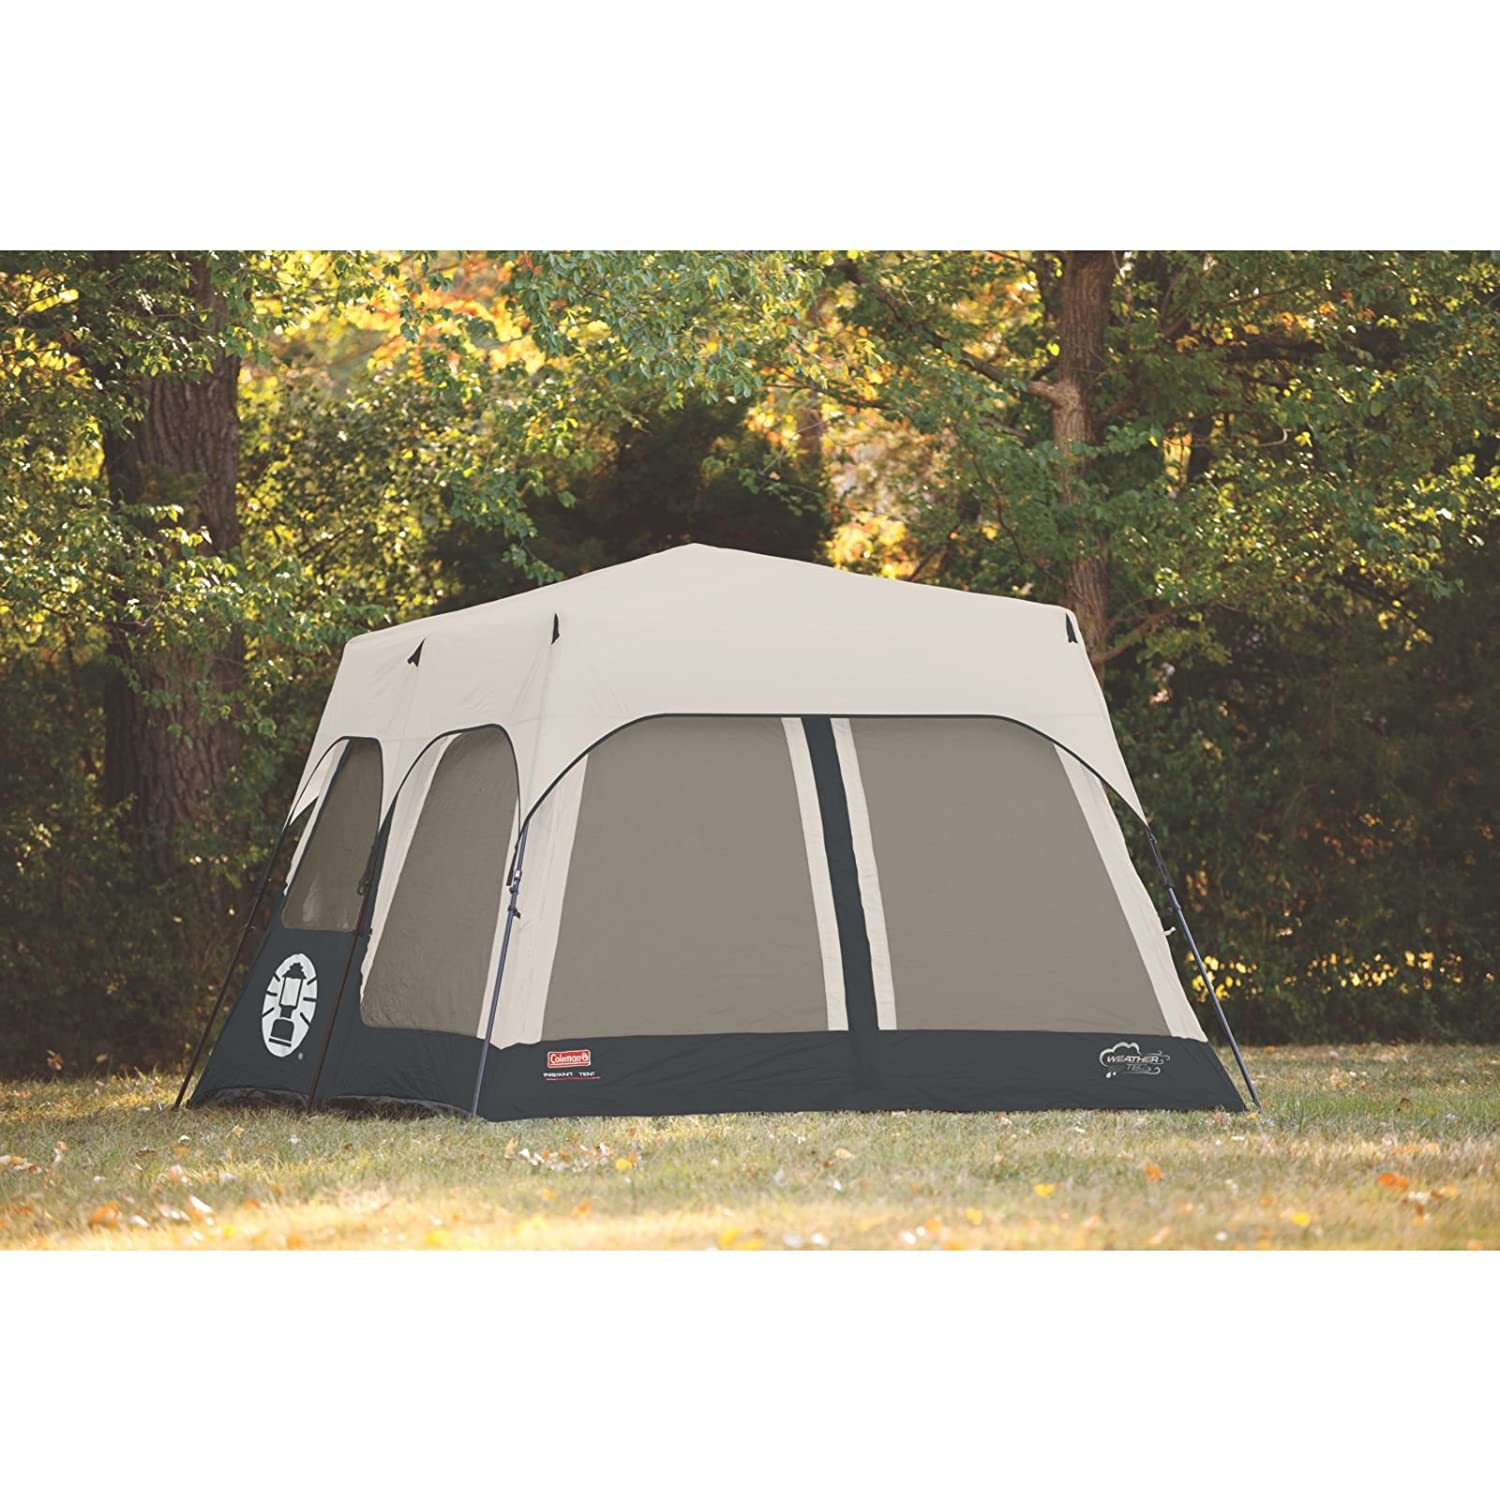 Amazon.com  Coleman Accy Rainfly Instant 8 Person Tent Accessory Black 14x10-Feet  Sports u0026 Outdoors  sc 1 st  Amazon.com & Amazon.com : Coleman Accy Rainfly Instant 8 Person Tent Accessory ...